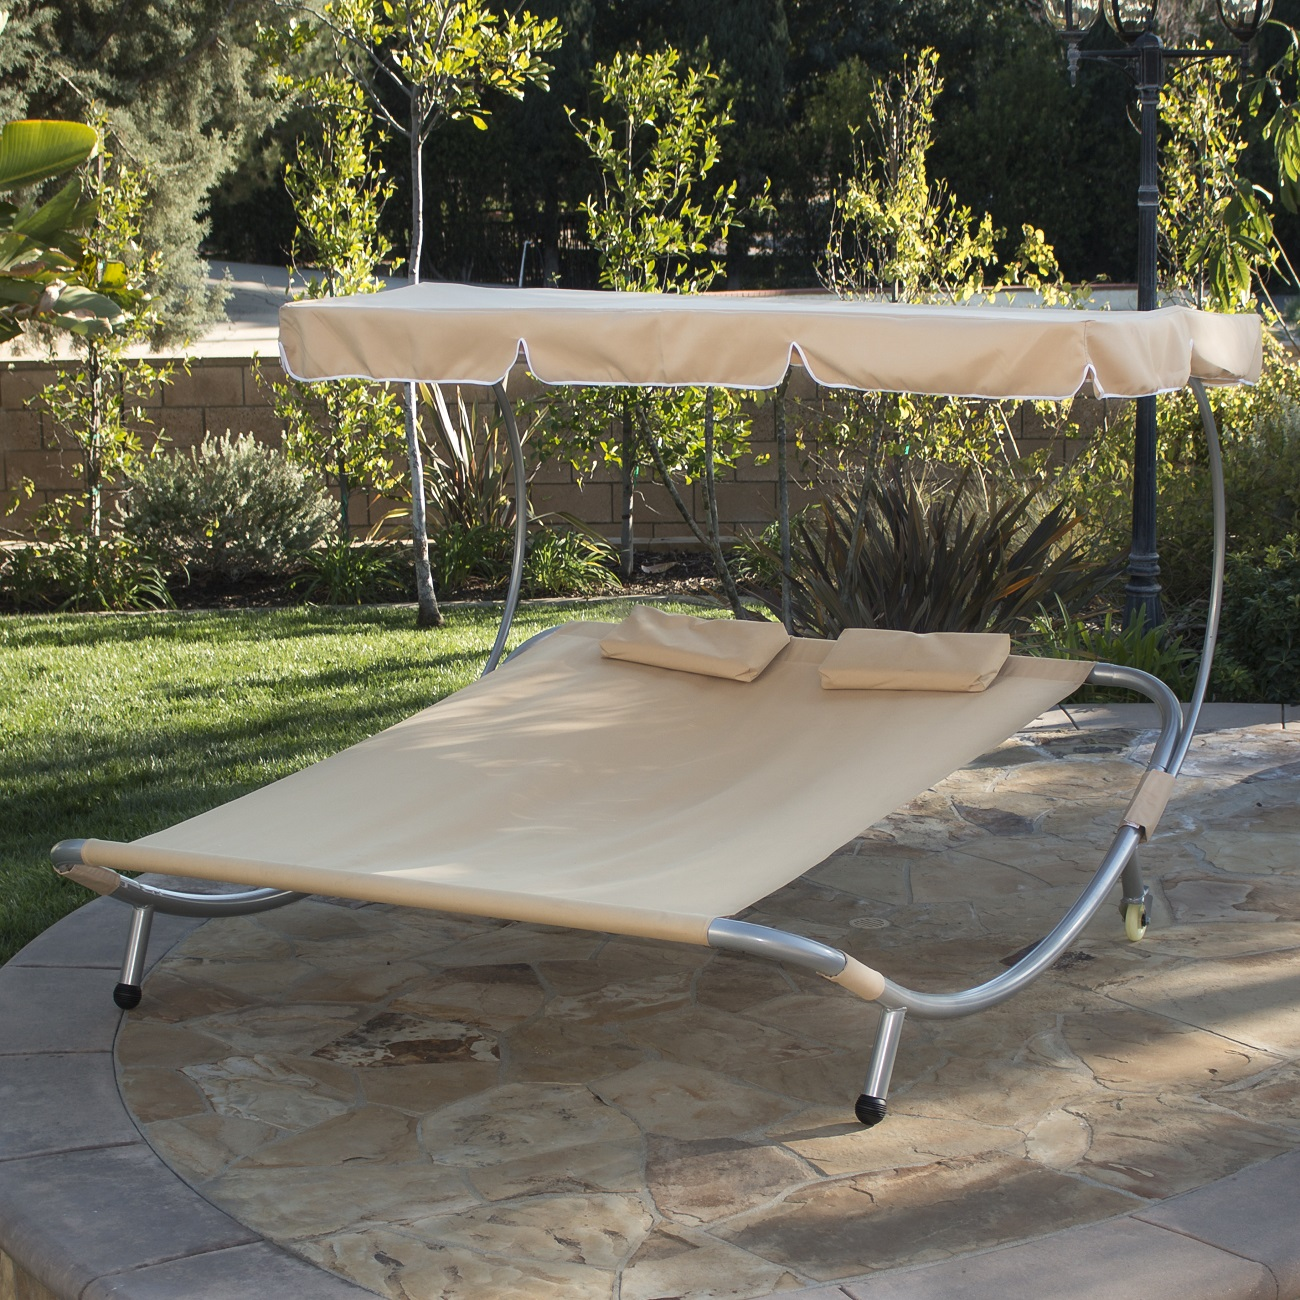 Outdoor Chair With Canopy New Hammock Bed Lounger Double Chair Pool Chaise Lounge